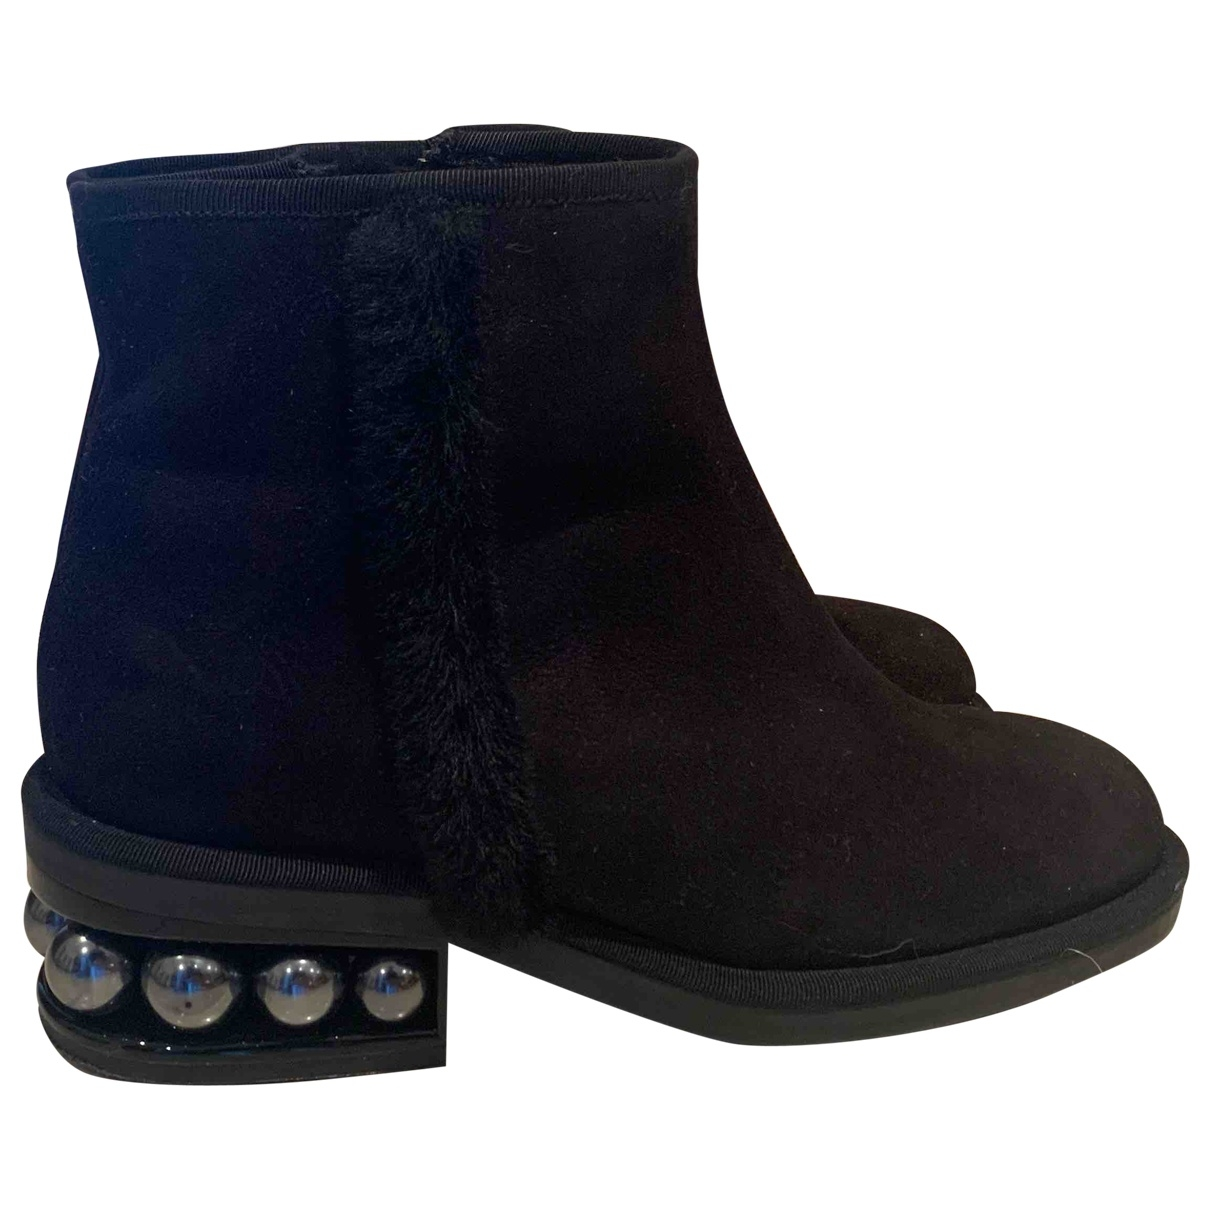 Nicholas Kirkwood \N Black Shearling Ankle boots for Women 35 EU